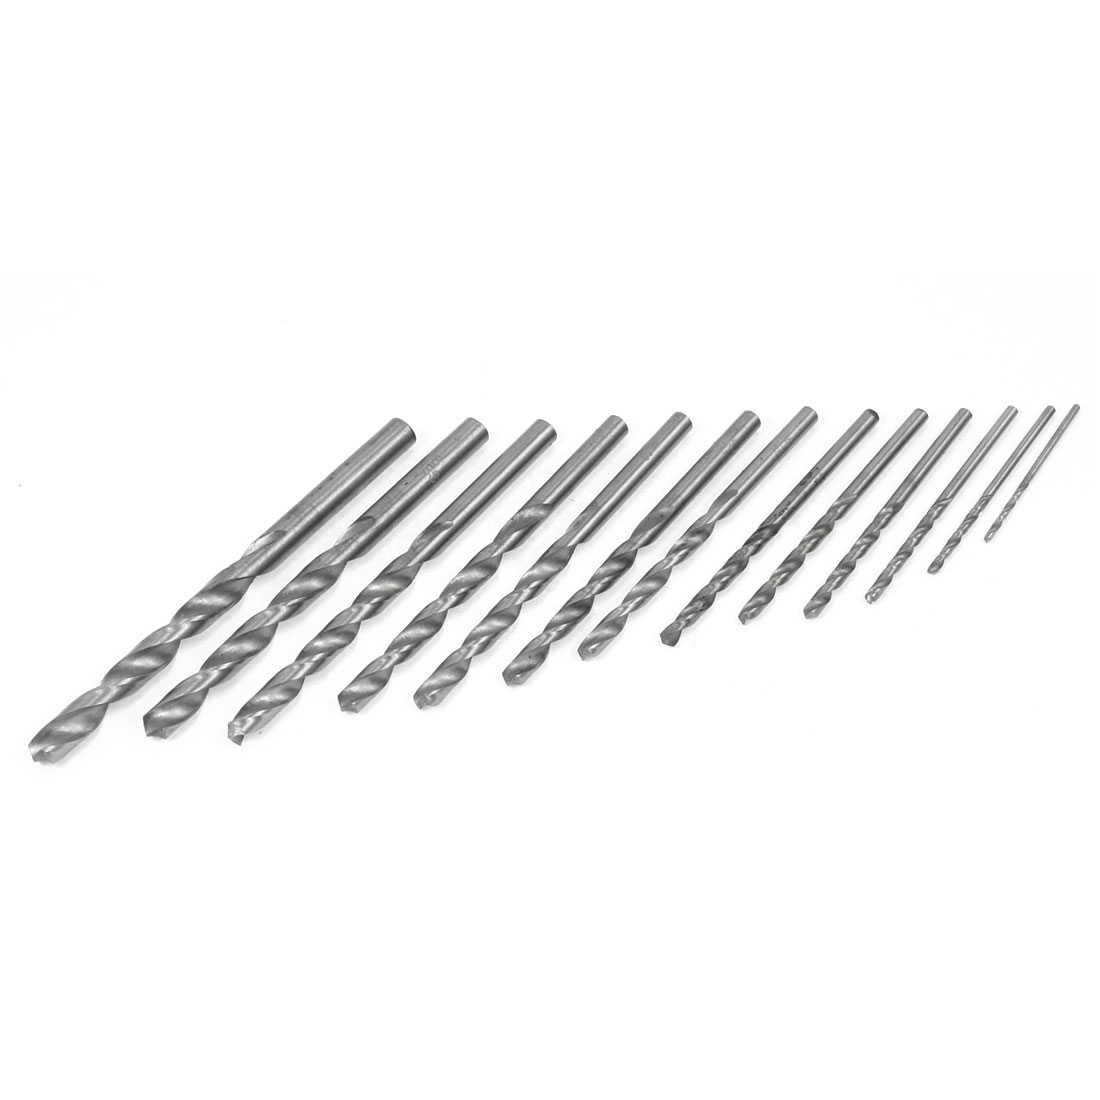 Iron Drilling Size High Speed Steel HSS Twist Drill Bit 13 in 1 Kit